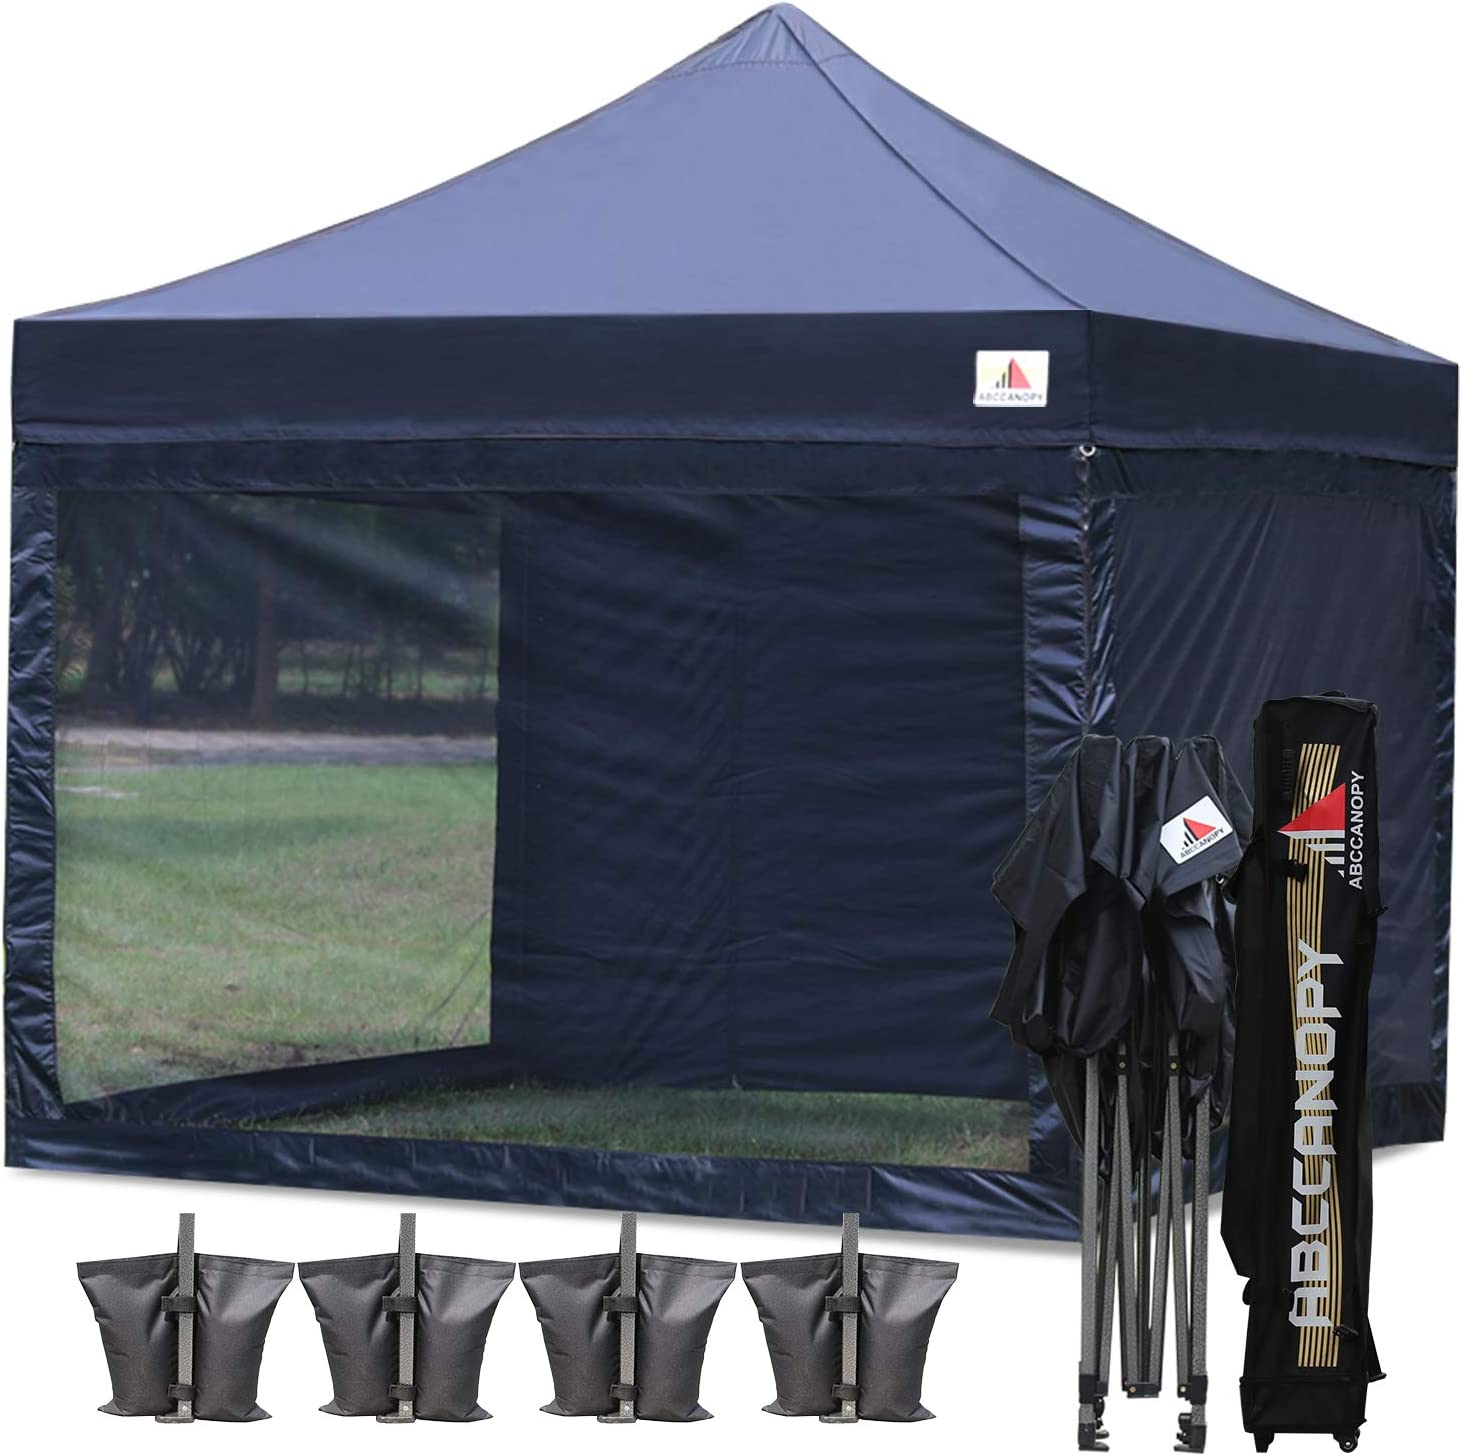 ABCCANOPY 10x10 Pop up Canopy Tent Commercial Tents with White Mesh Walls Camping Screen & Mesh House Bonus Rolly Carry Bag and 4X Weight Bag, 30+Colors 71wAt2MC4tL